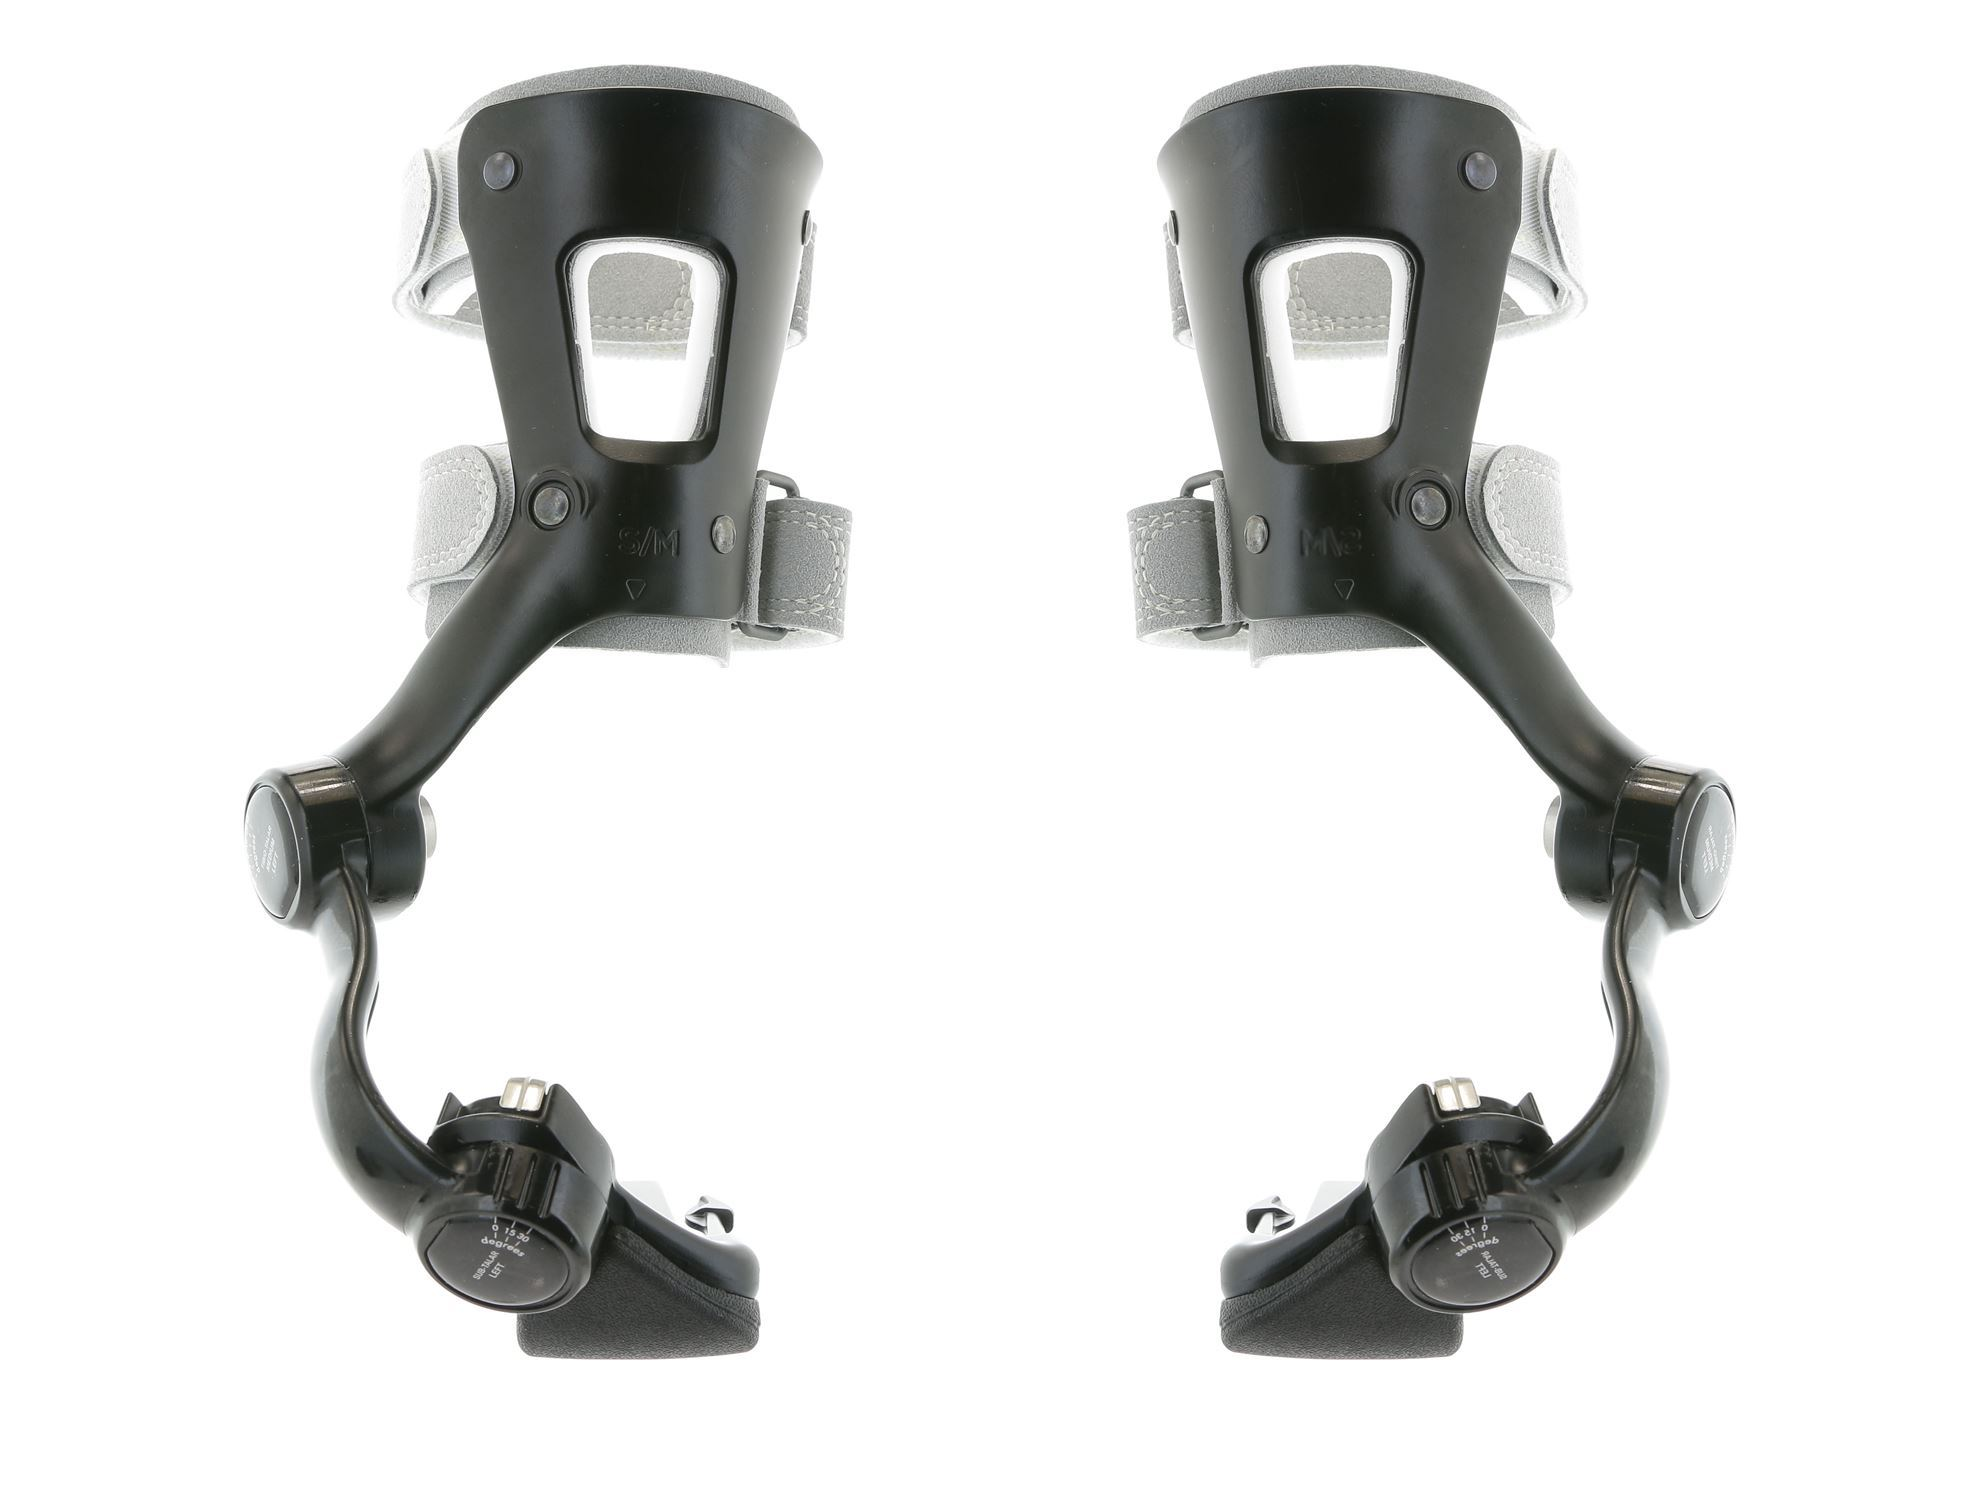 ADM, Pair, for use with the ADM Ankle Foot Orthosis or adapted shoes for the ADM